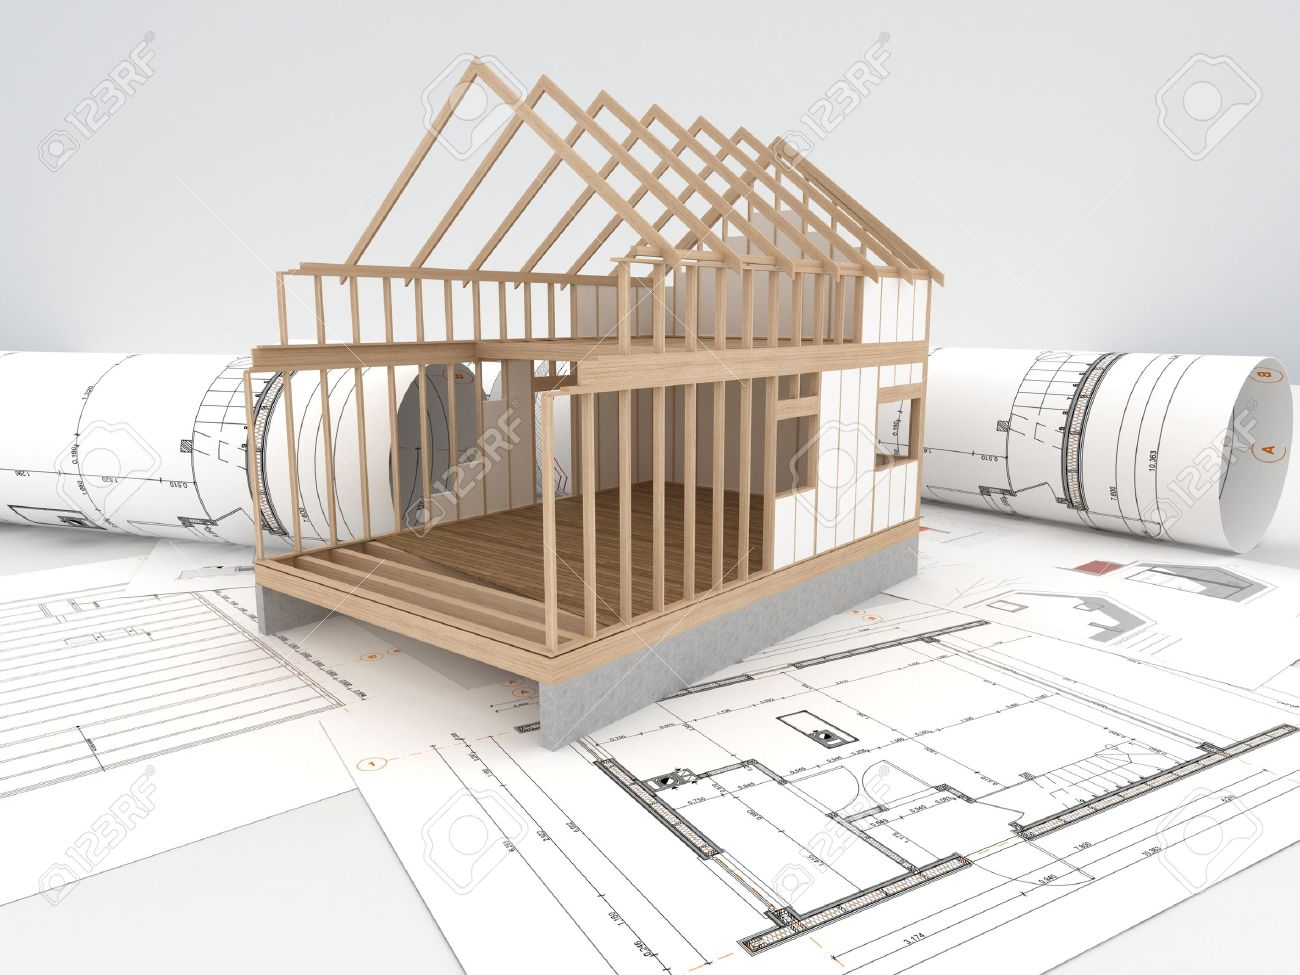 Architecture Houses Drawings design and construction of wooden house - architects technical